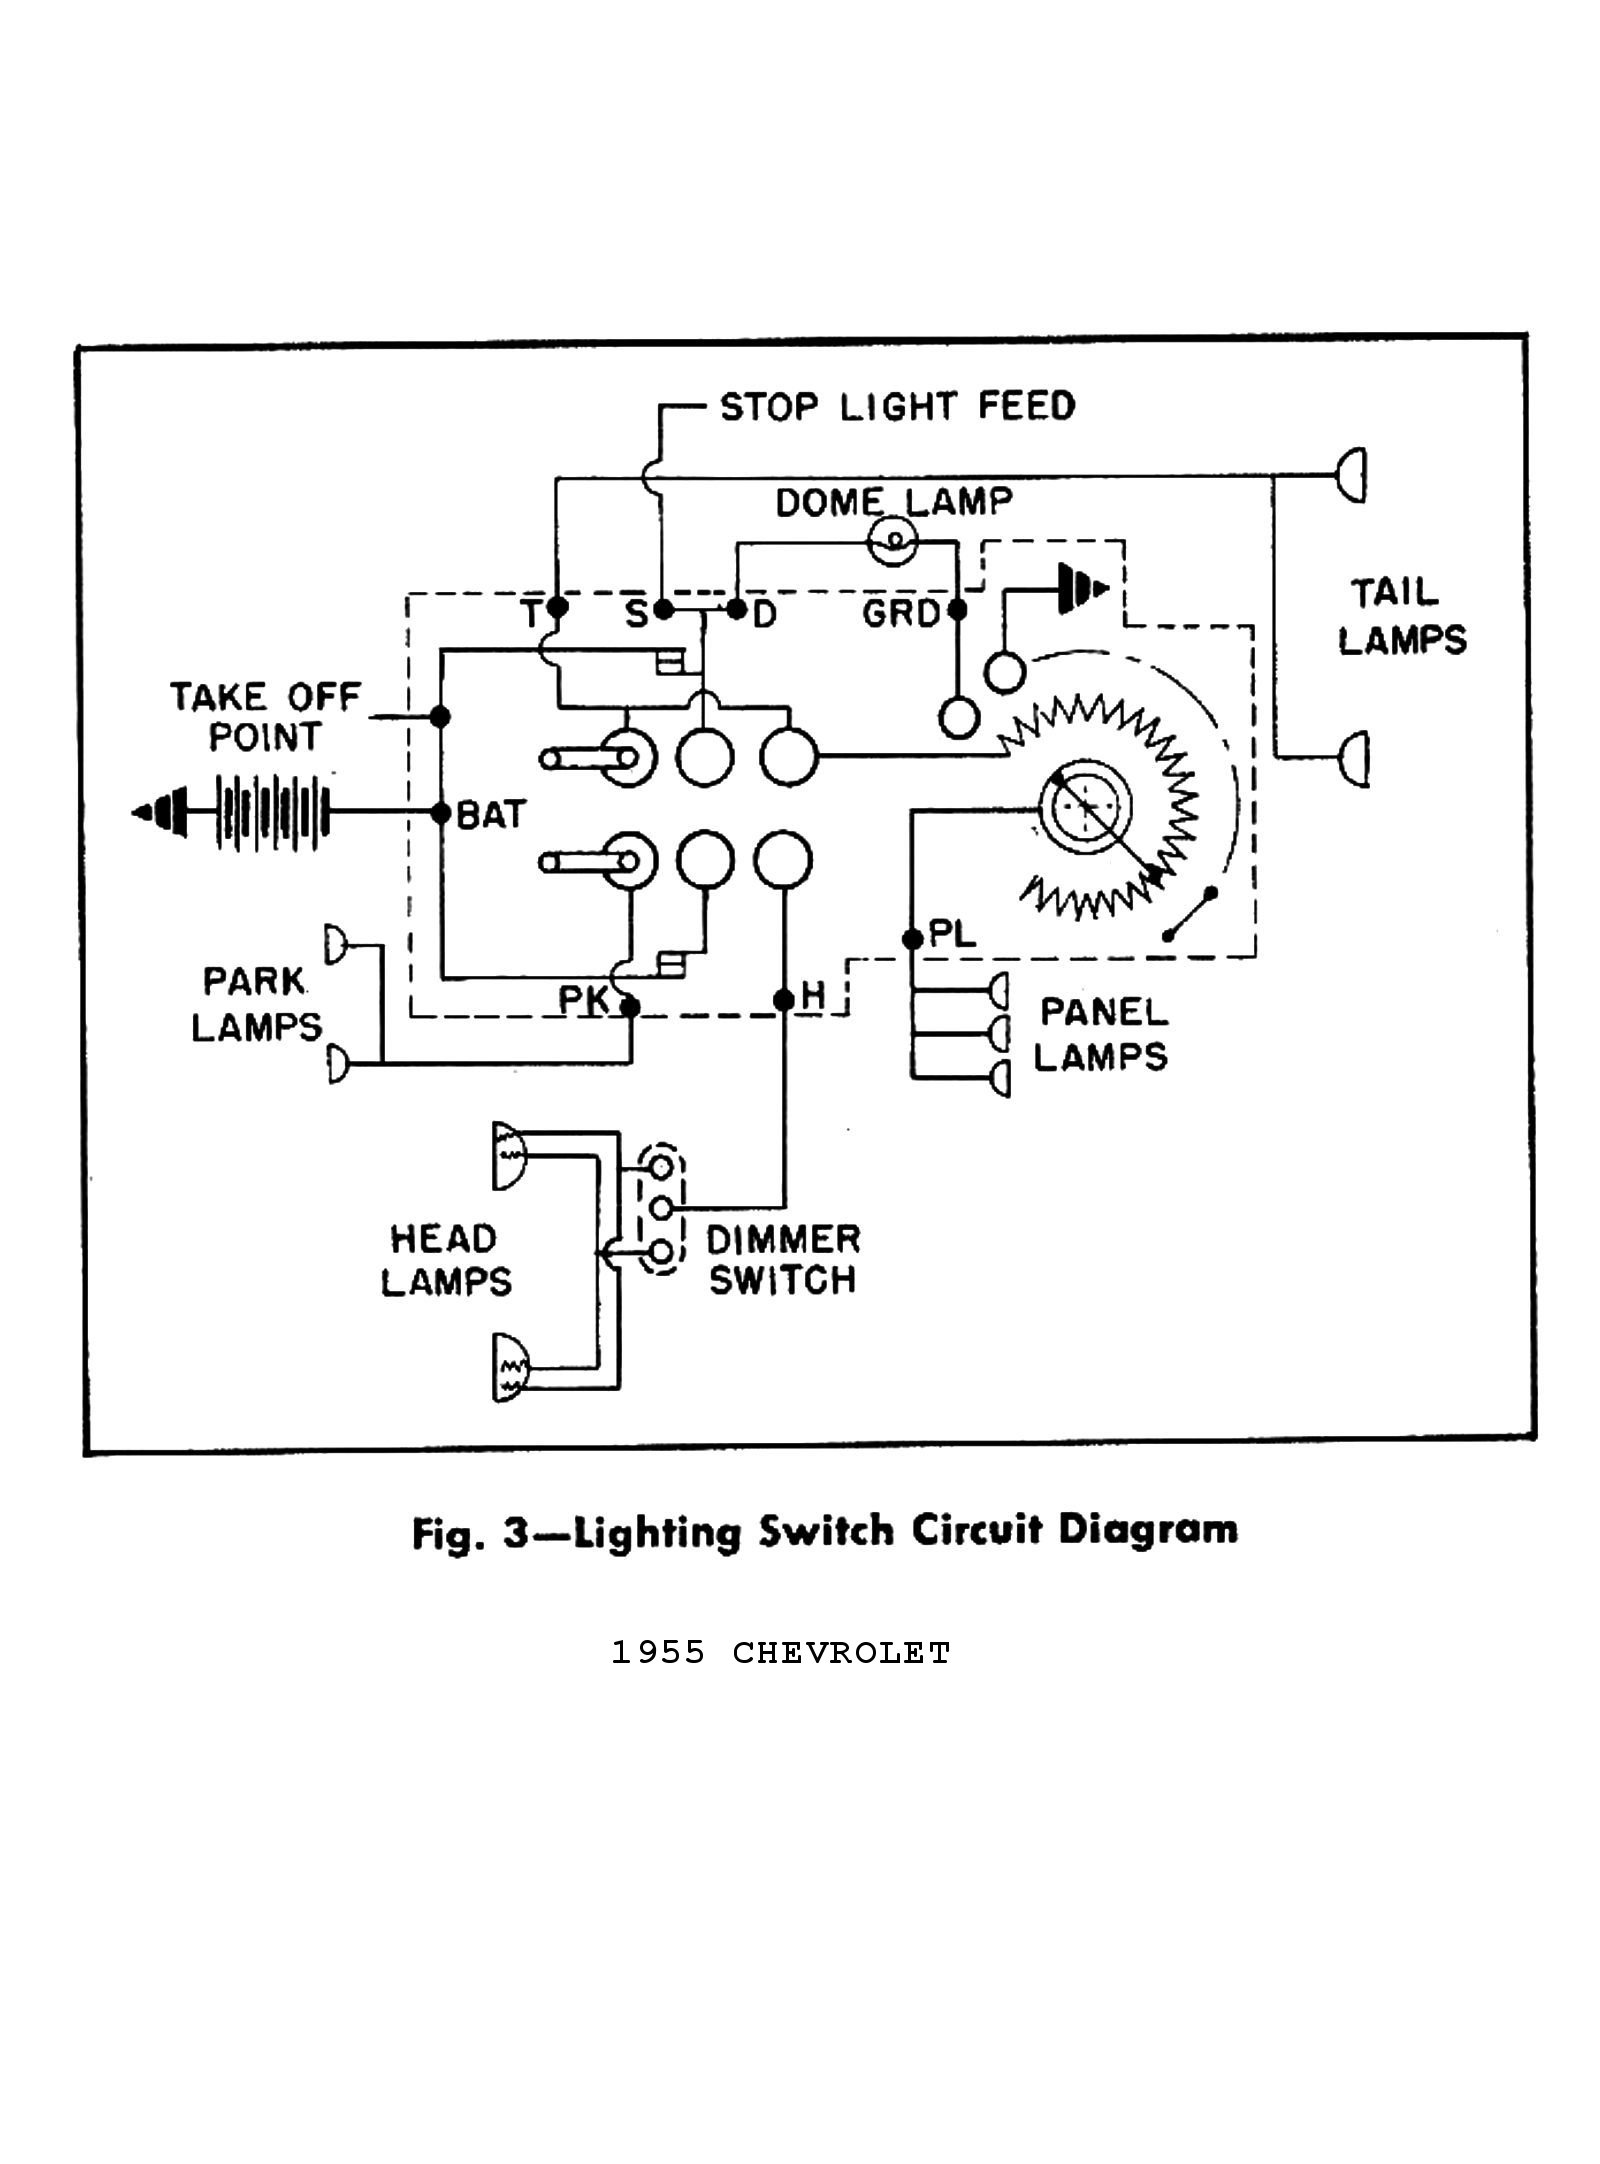 57 Chevy Light Switch Wiring - pietrodavico.it ground-historian -  ground-historian.pietrodavico.itPietro da Vico